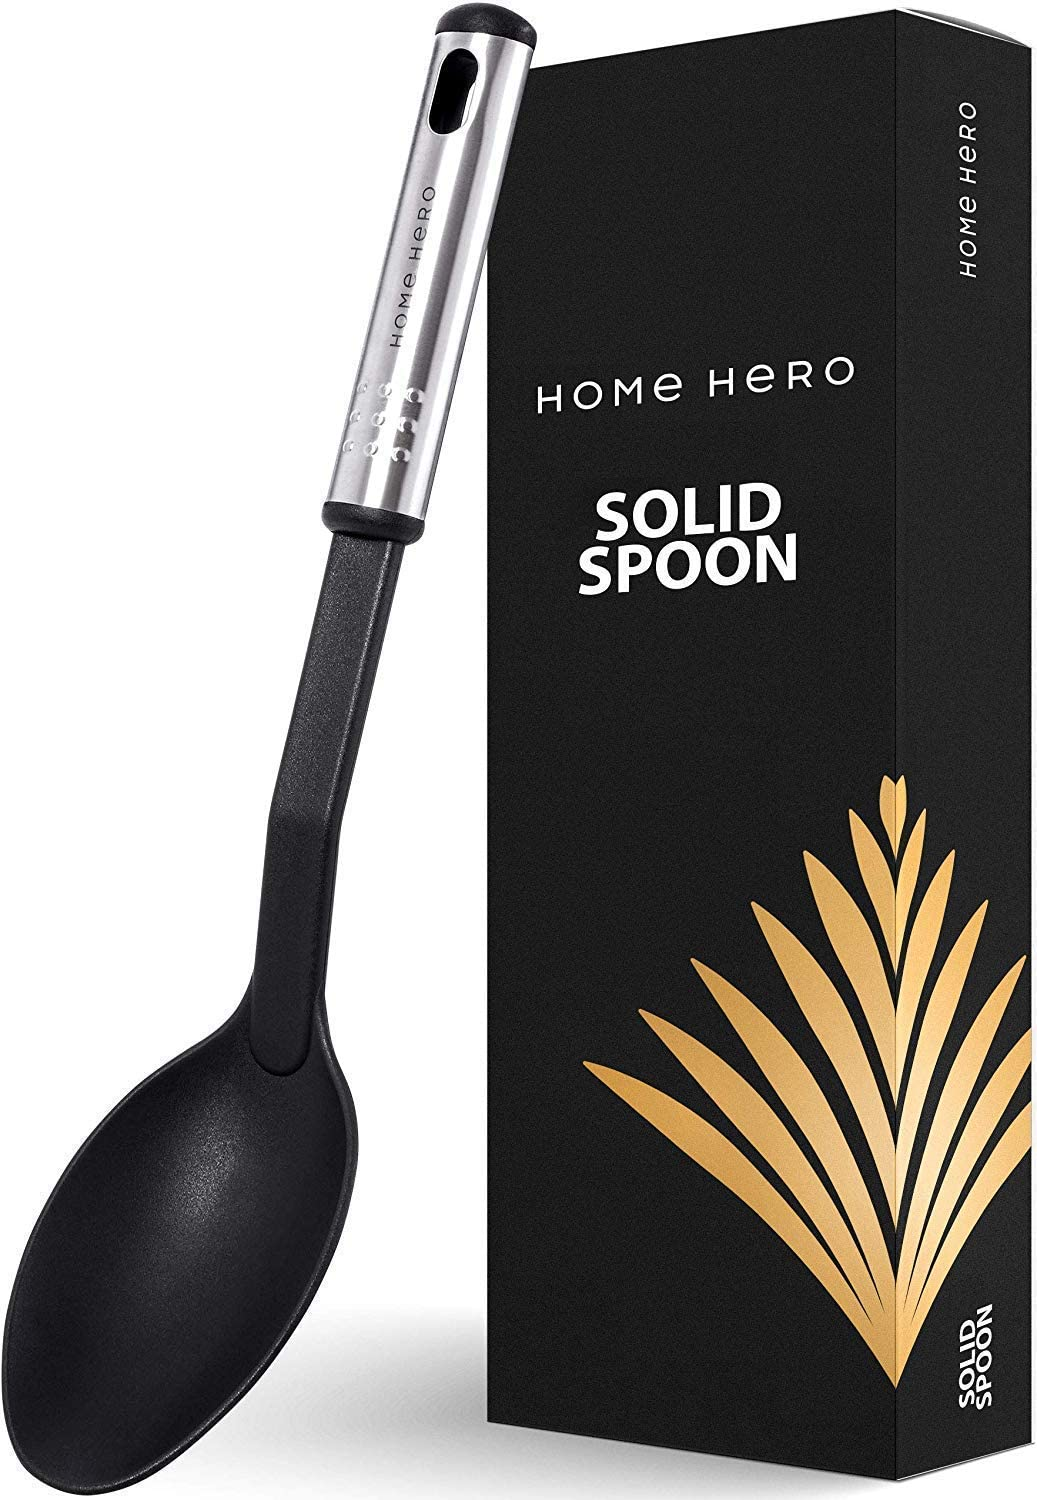 Nylon Spoon Large Cooking Spoon Basting Spoon - Solid Serving Spoon for Cooking - Large Kitchen Spoon Cooking Non Slotted Spoon - Nonstick Serving Spoon - Nylon Spoons for Cooking Solid Spoon